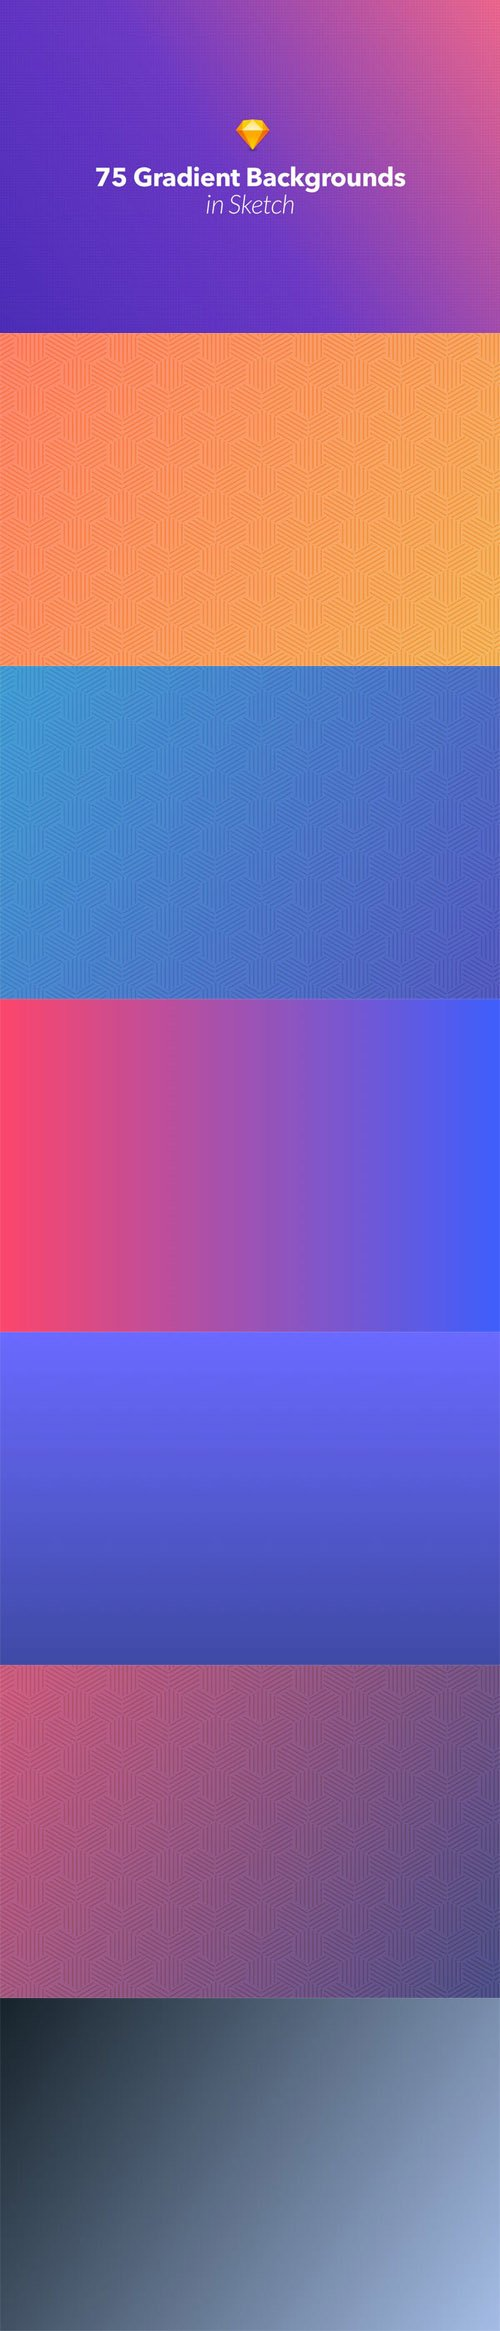 75 Gradient Backgrounds in Sketch Vol. 2